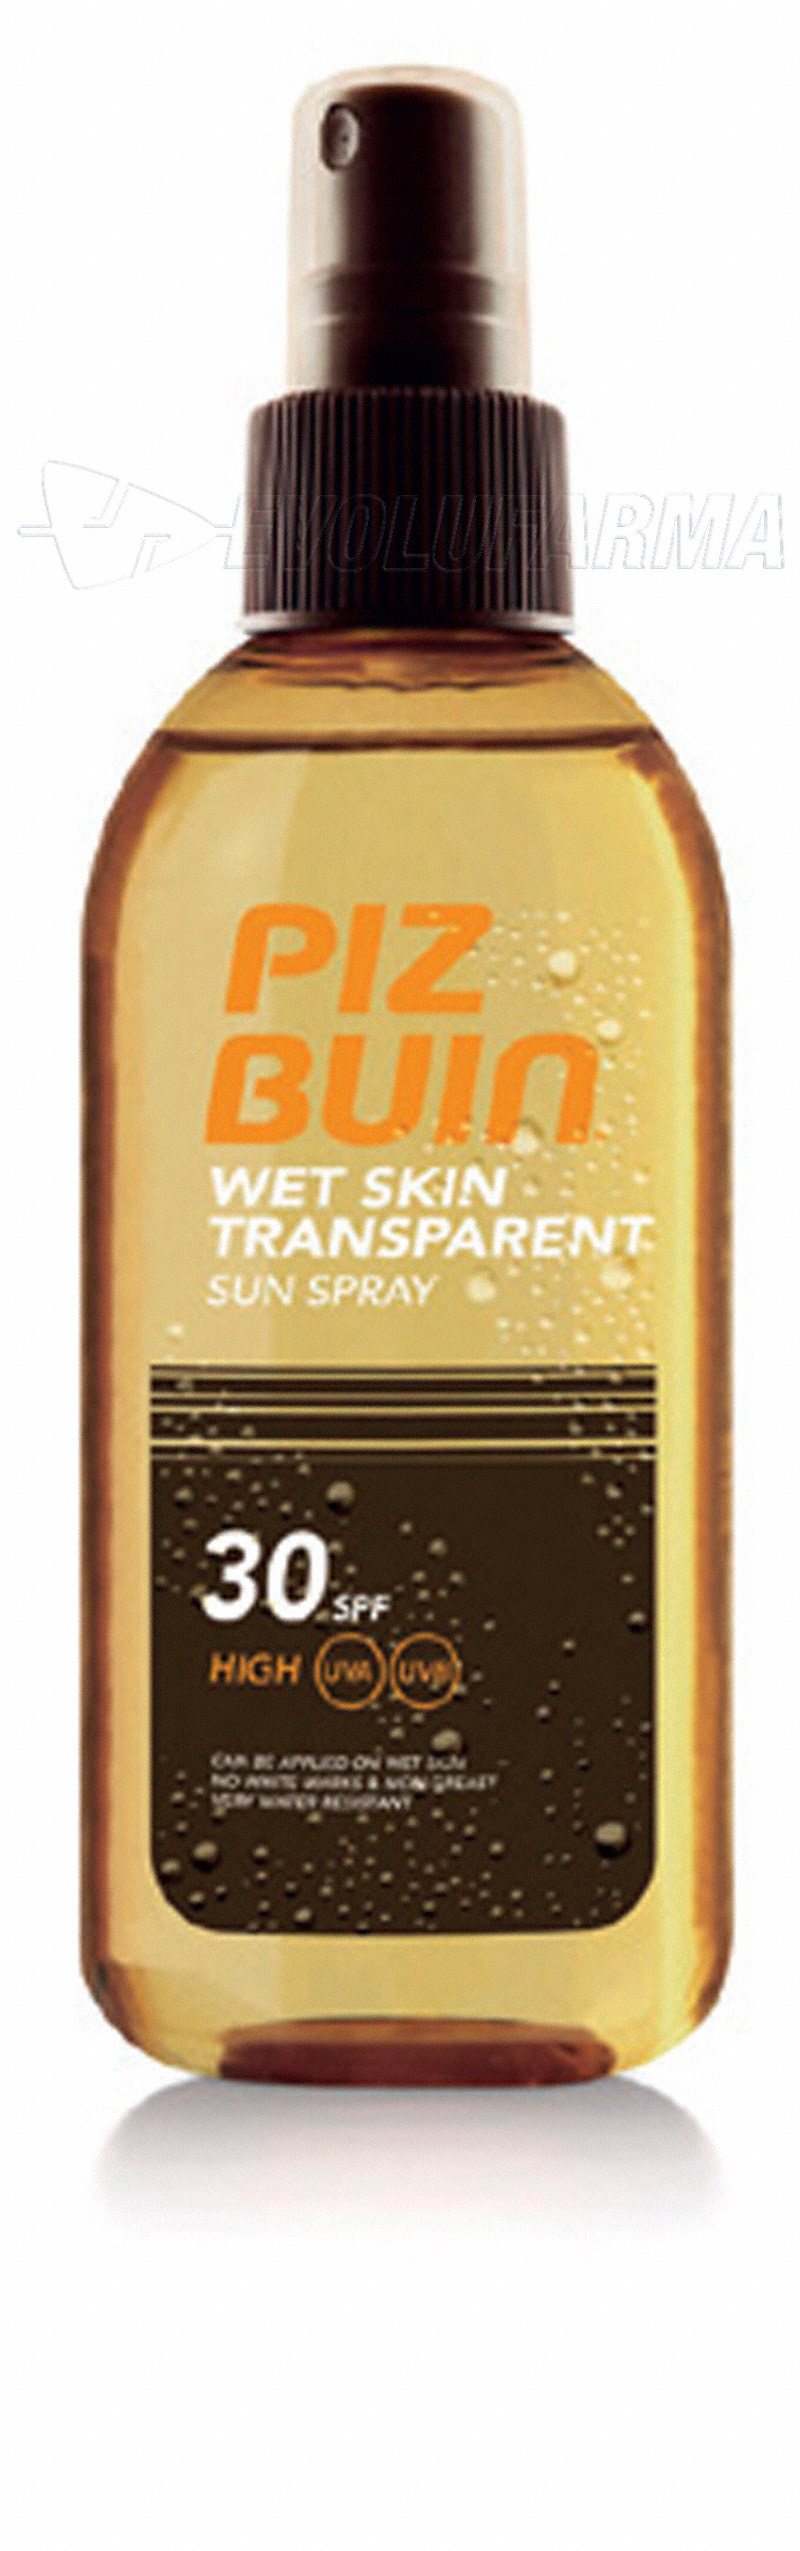 PIZ BUIN WET SKIN SPRAY SOLAR TRANSPARENTE SPF 30. 150 ml.